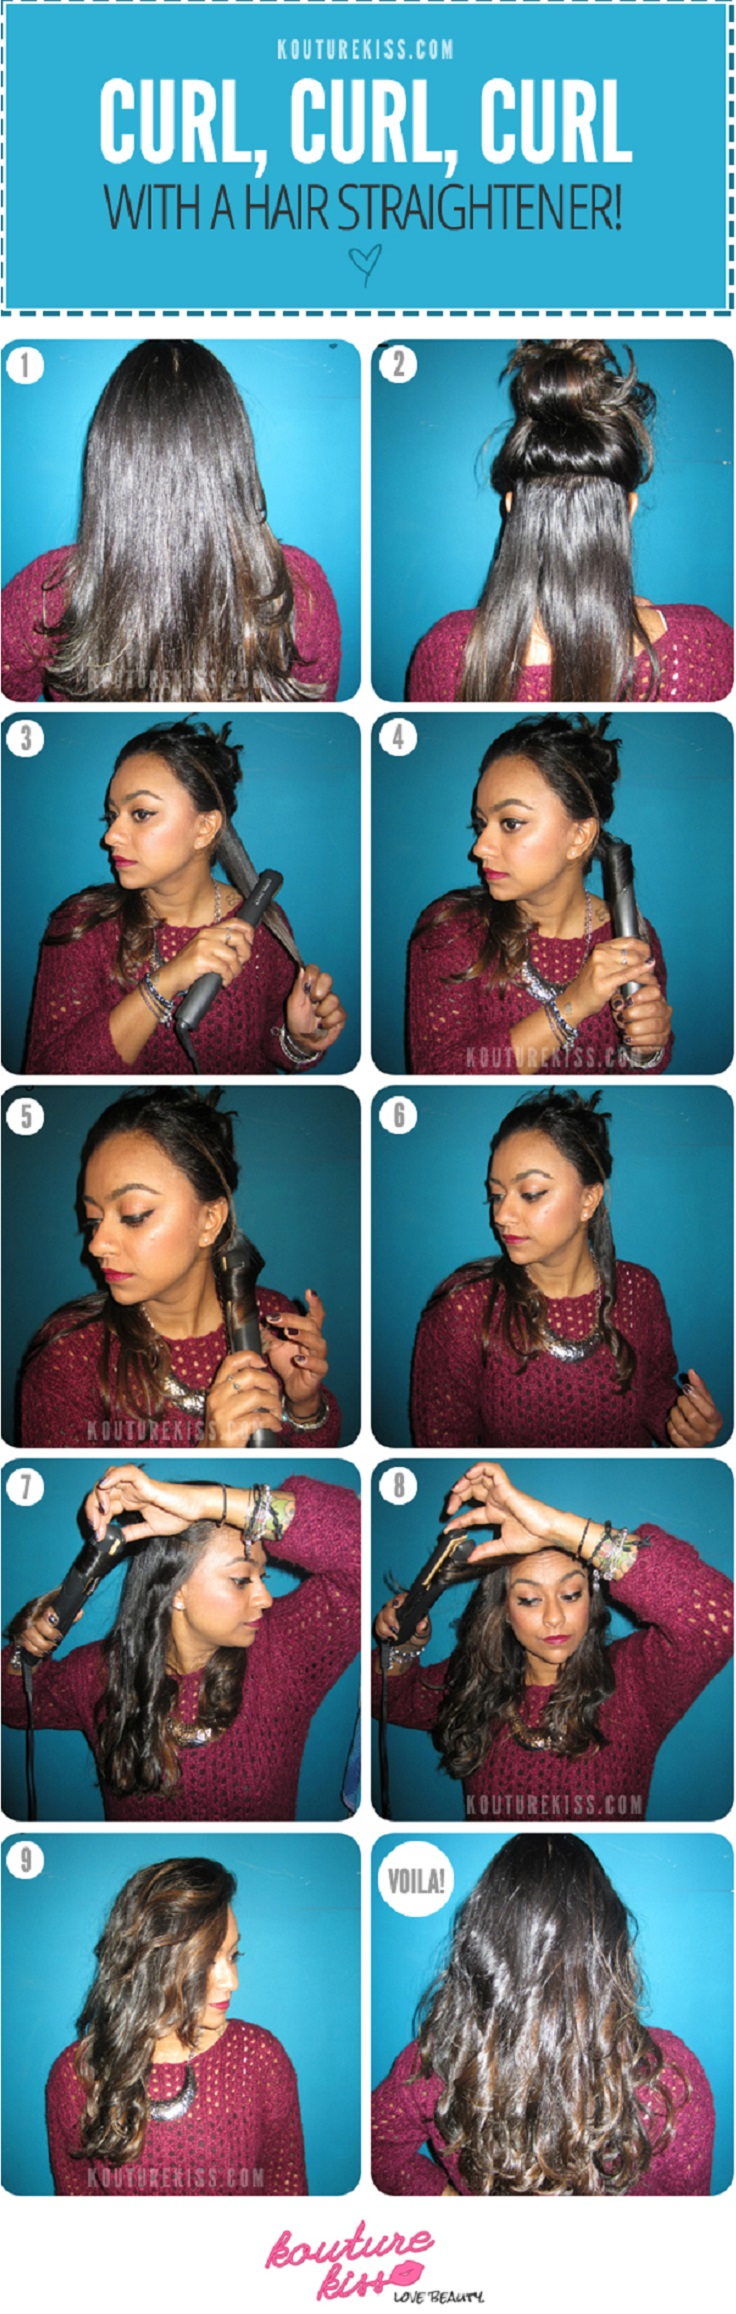 Top 10 Best Tutorials on How to Curl Your Hair With Flat Iron